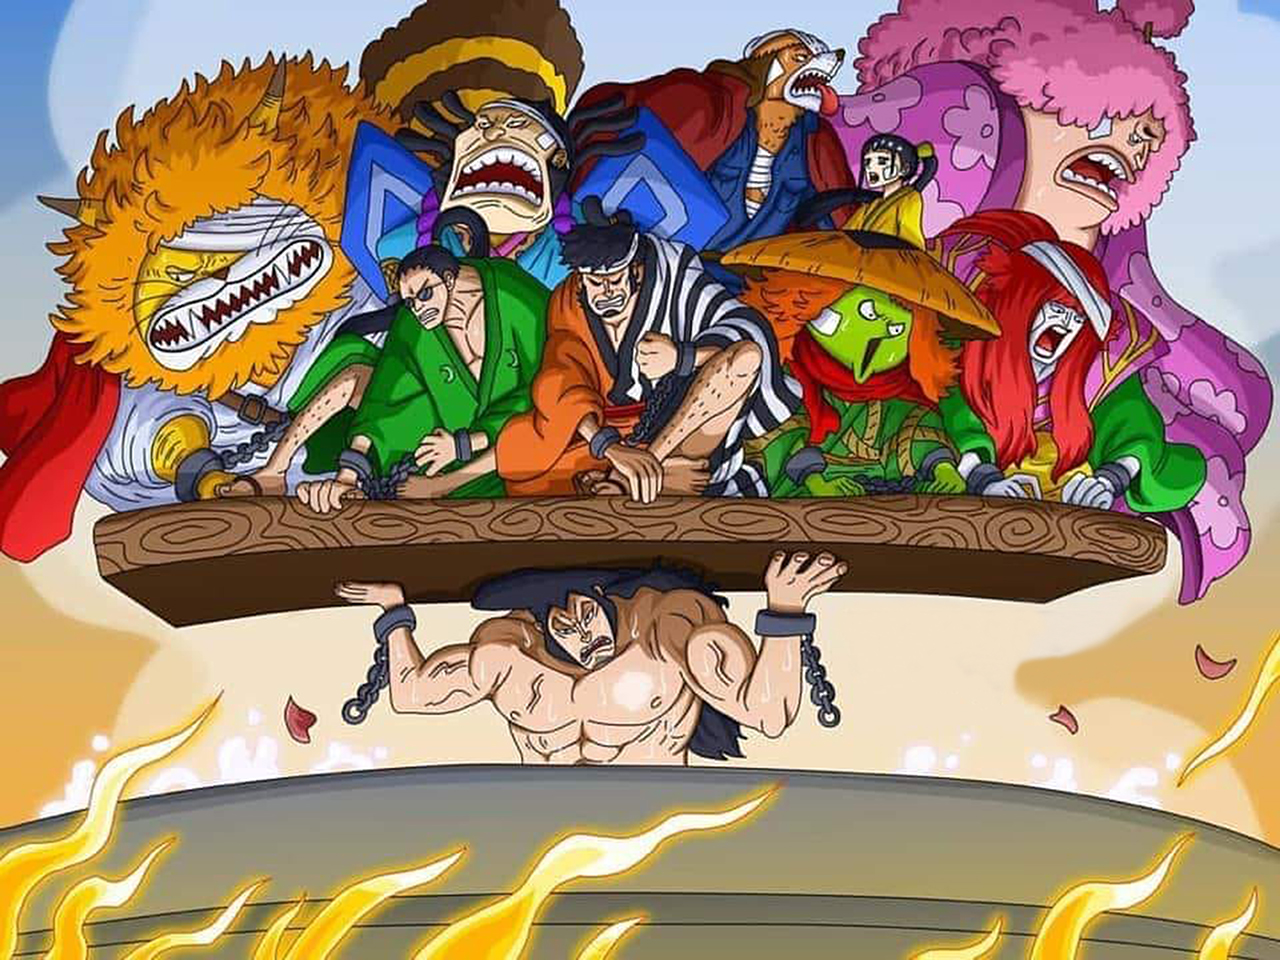 Oden One Piece Manga The General Rule Of Thumb Is That If Only A Title Or Caption Makes It One Piece Related The Post Is Not Allowed